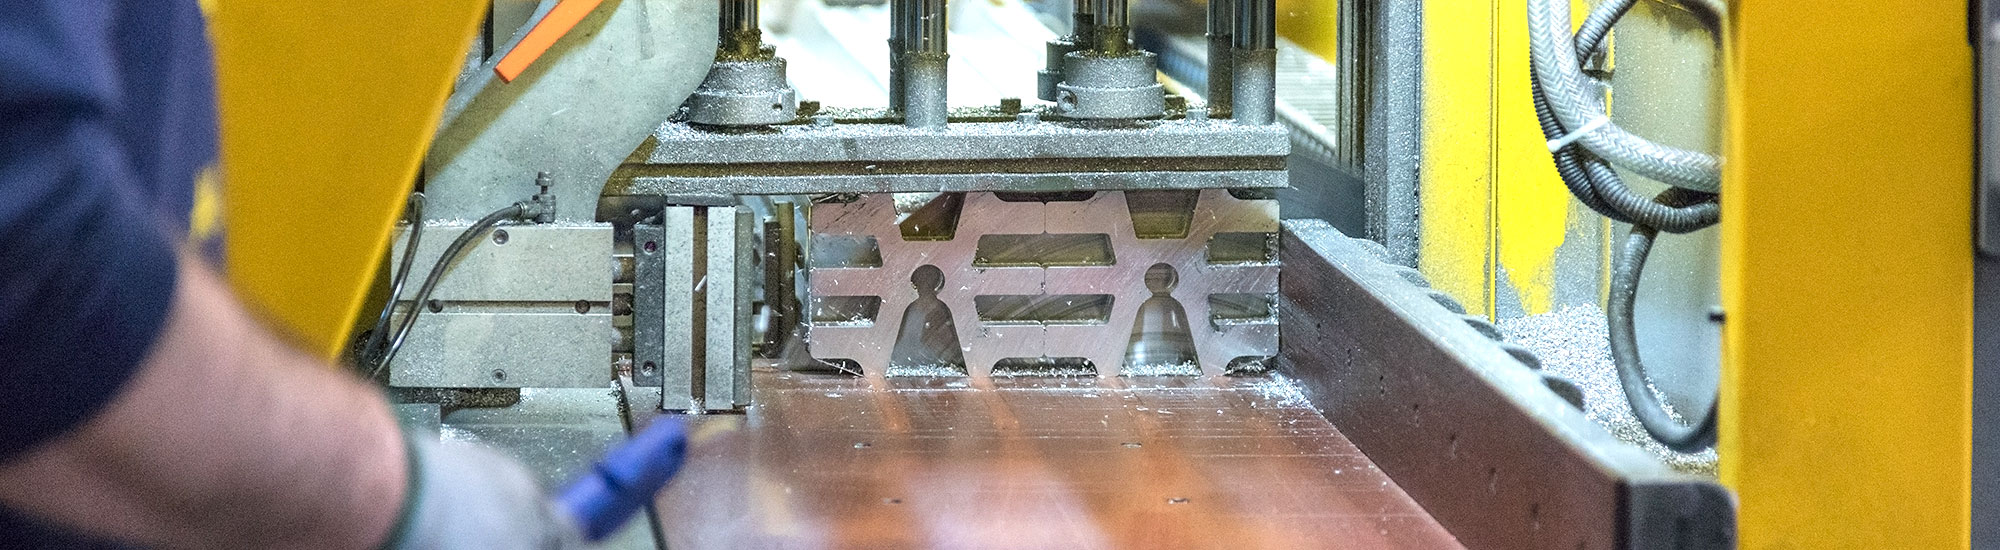 METAL PARTS BEING CUT WITH THE SAW